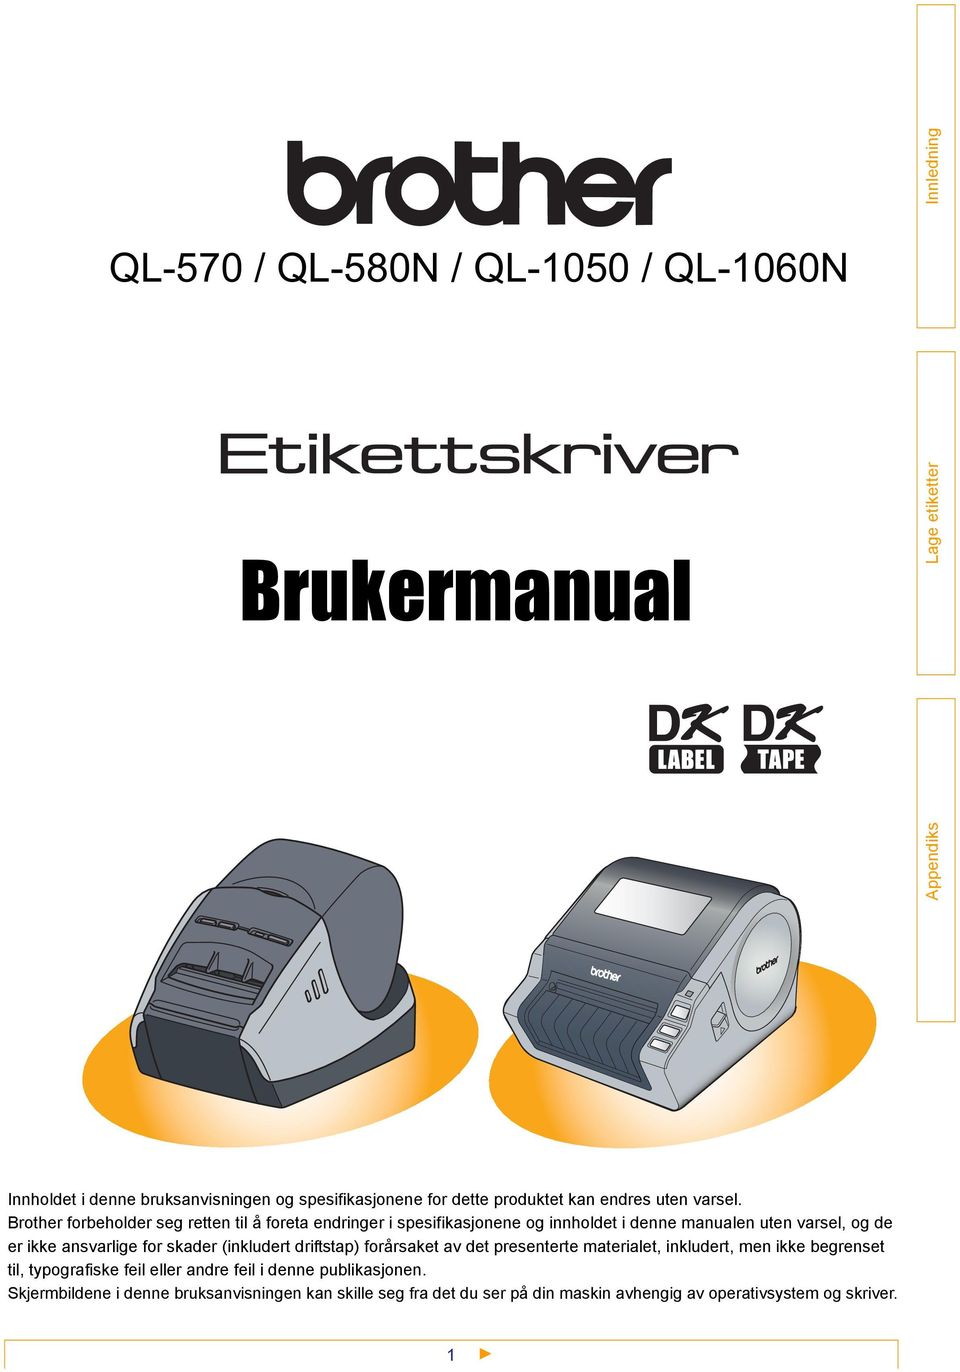 etiketteskriver brother ql1060n